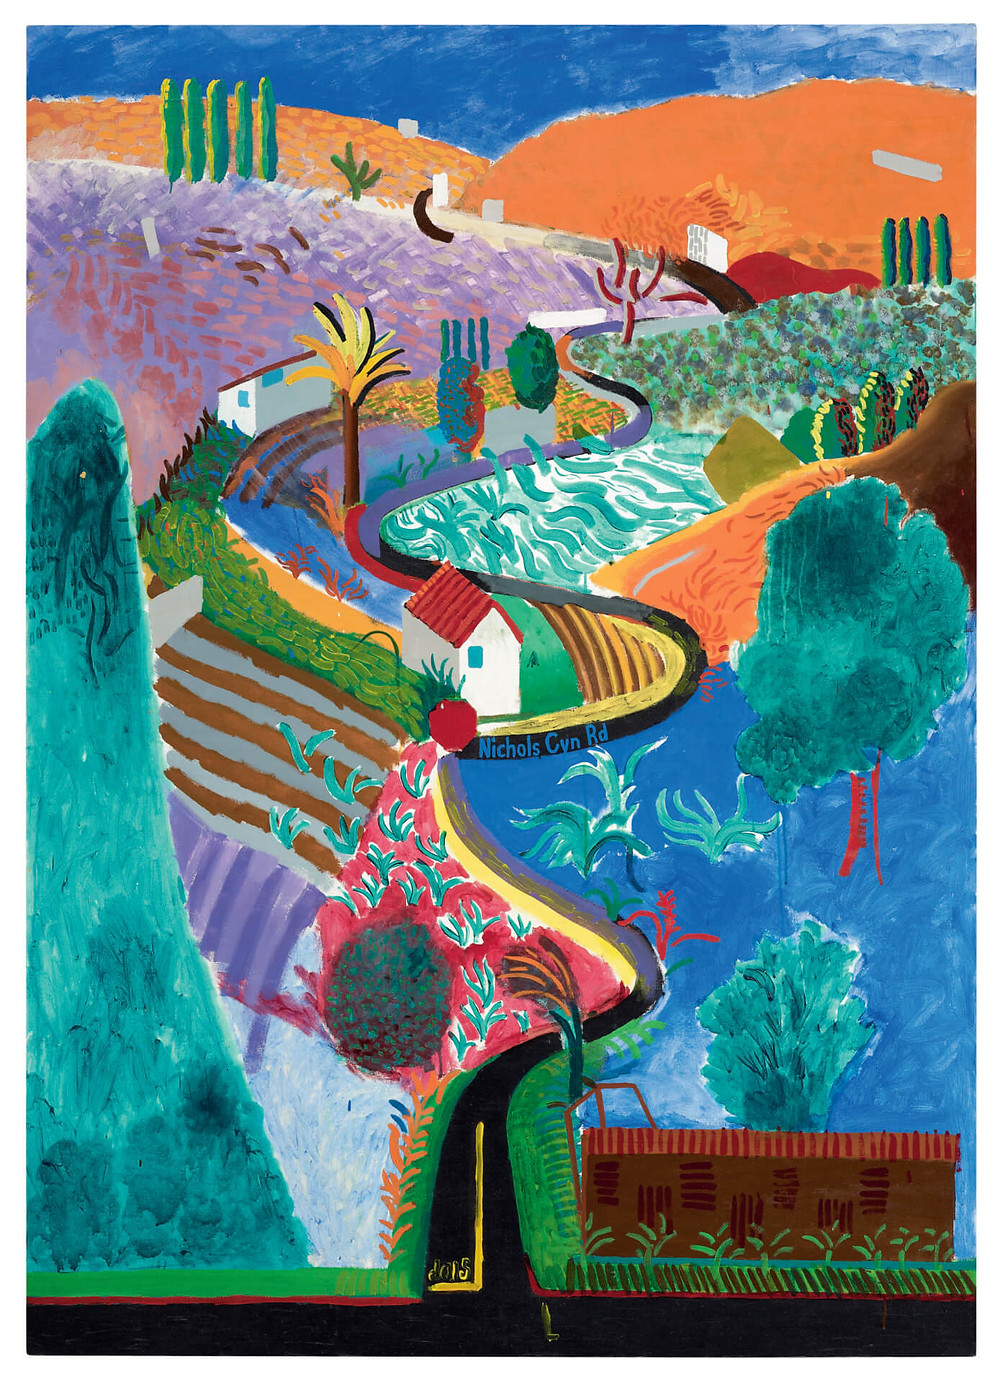 David Hockney, Nichols Canyon (1980). © David Hockney